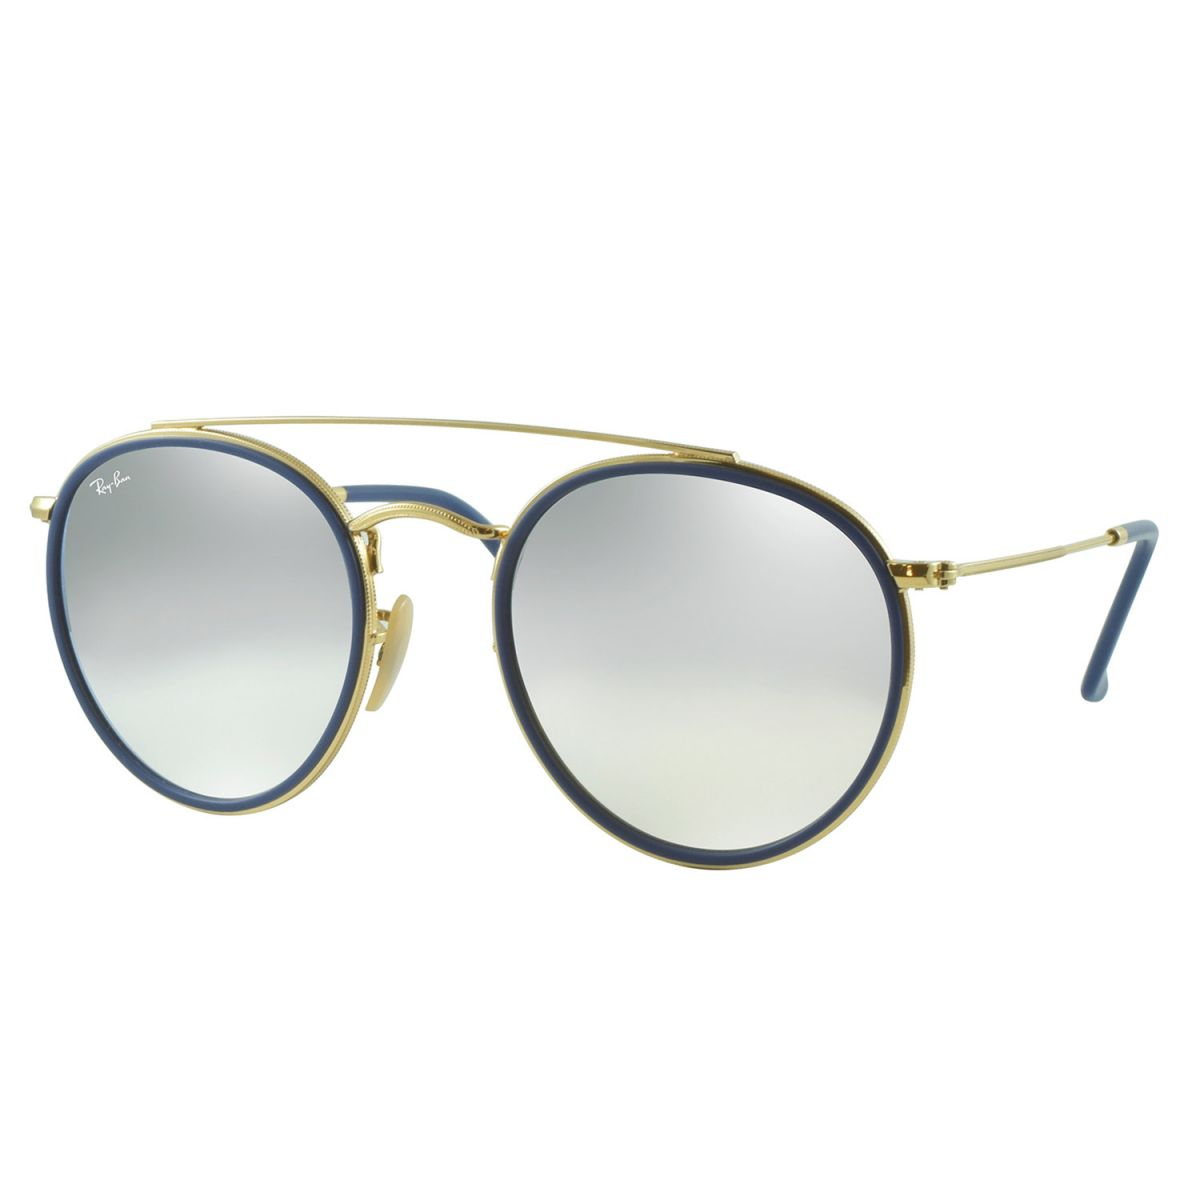 4707f2845 Óculos de Sol Ray-Ban Rb3647n 001/9U 51 Round Double Bridge